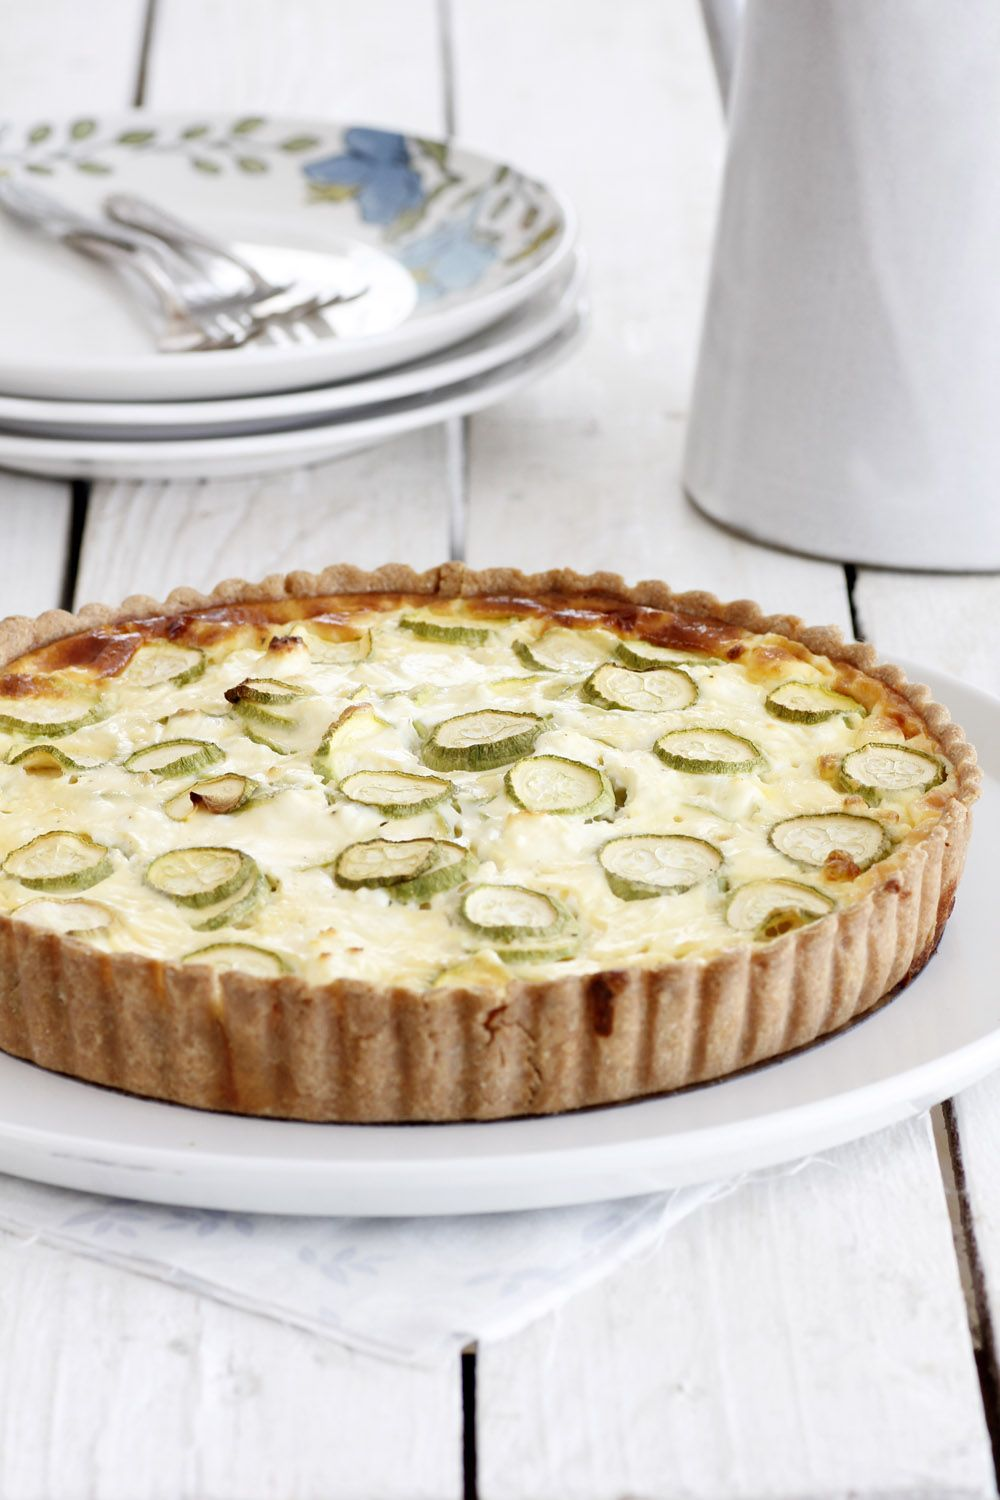 Zucchini Quiche with Ricotta Cheese